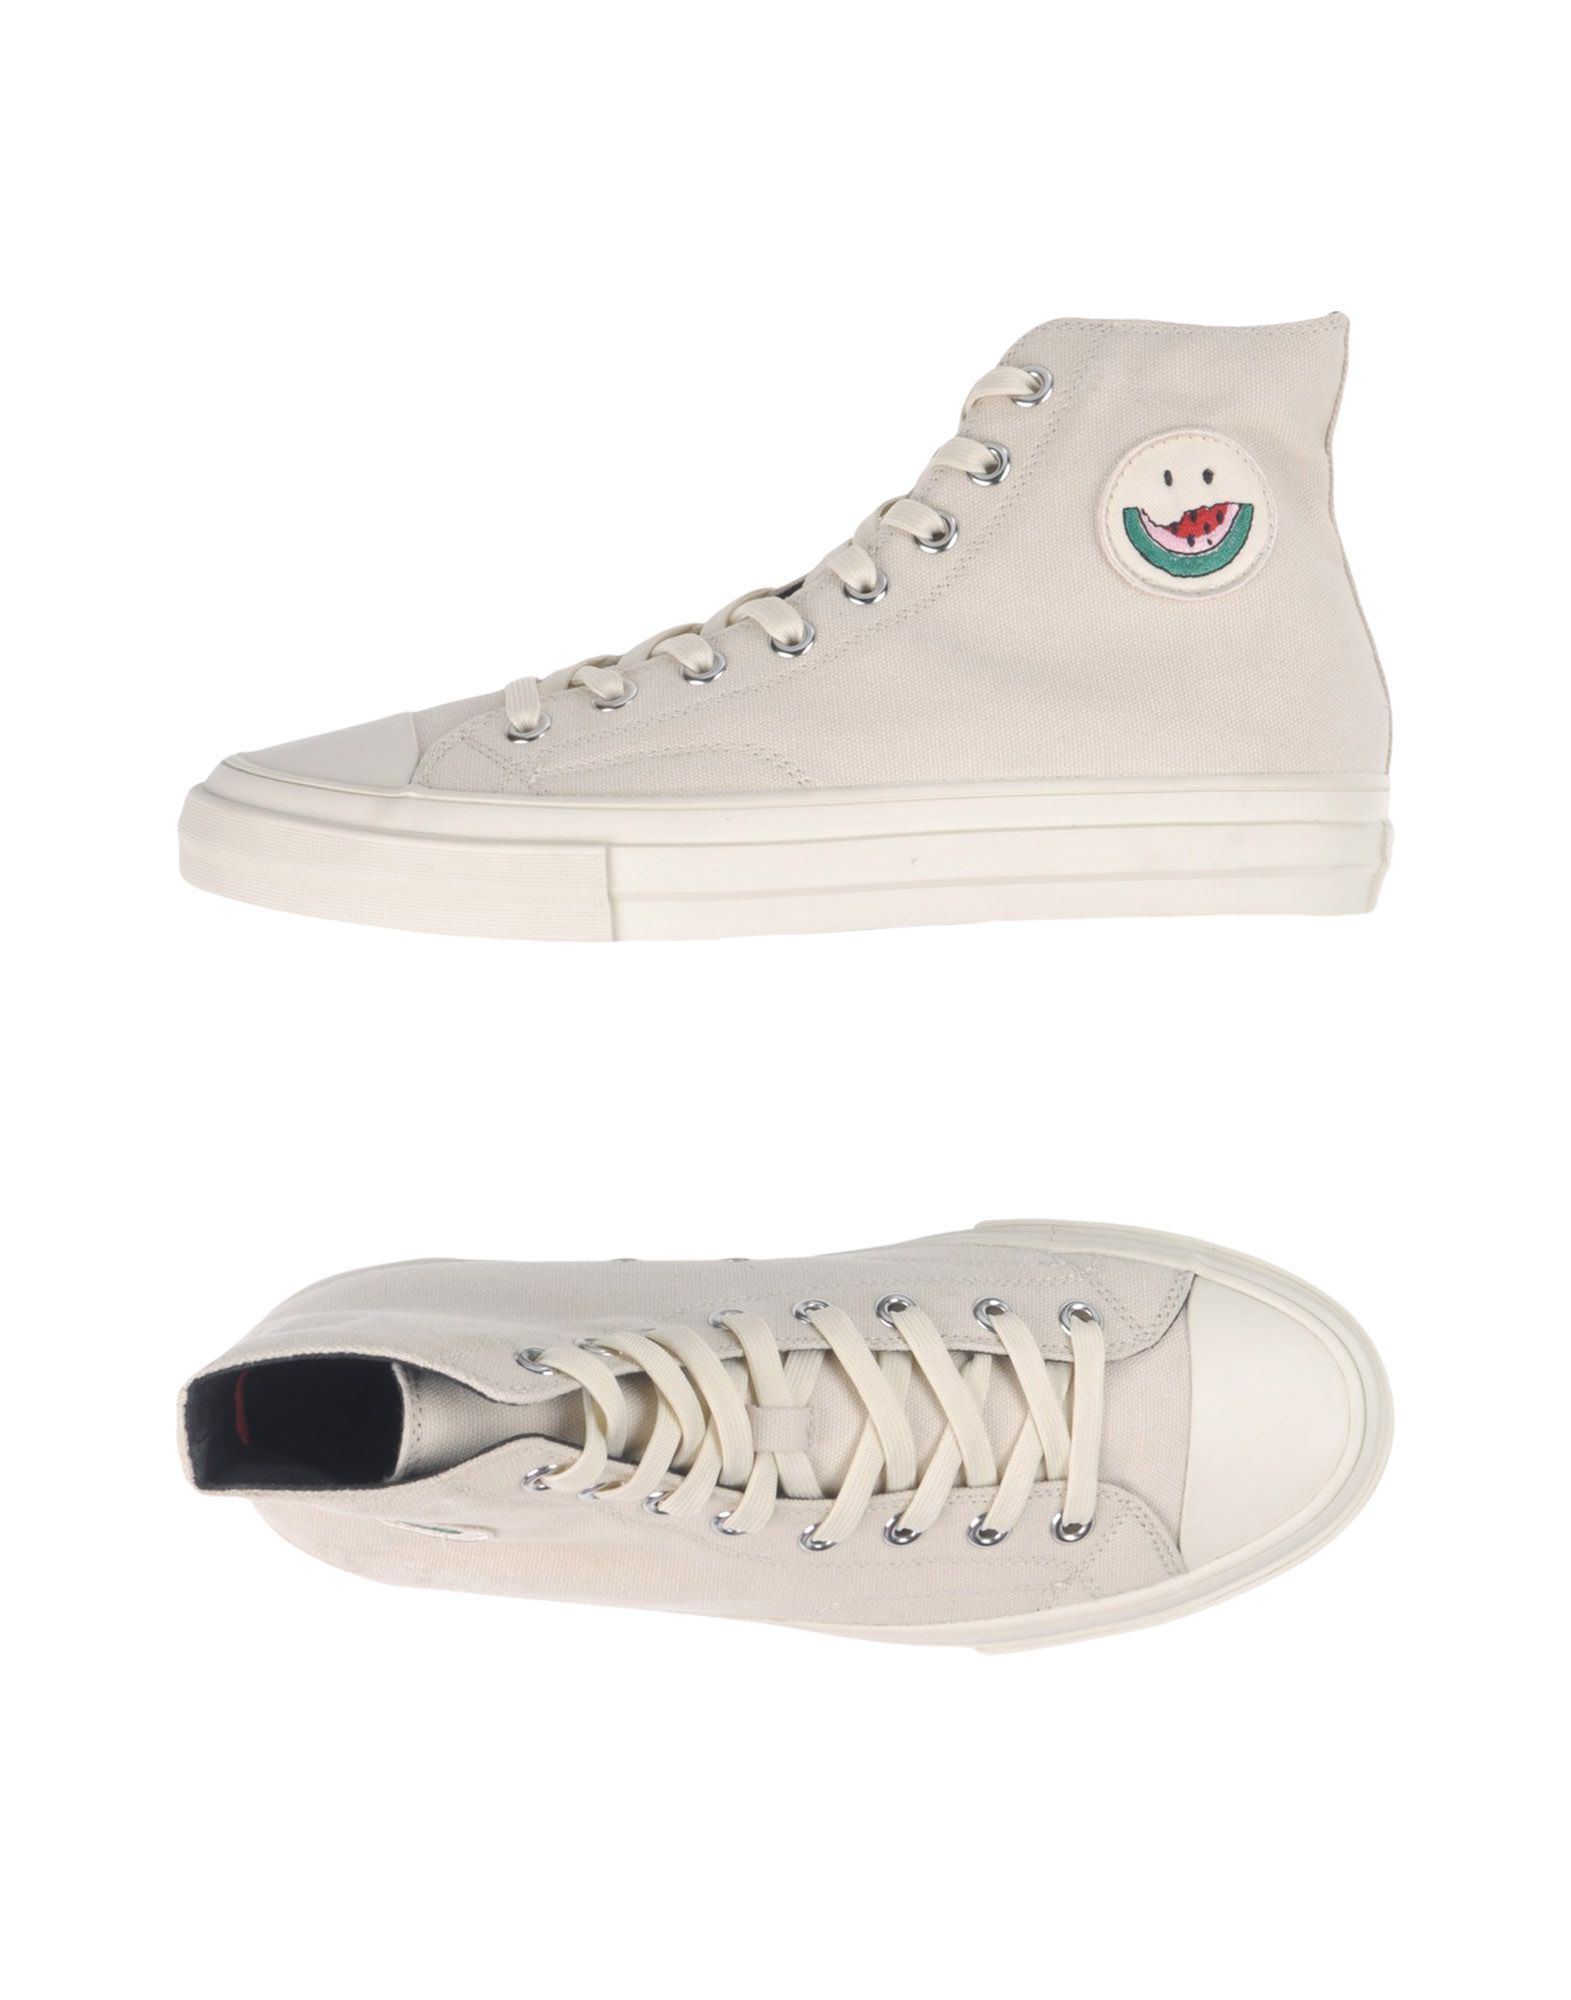 Sneakers Ps By Paul Smith Homme - Sneakers Ps By Paul Smith sur